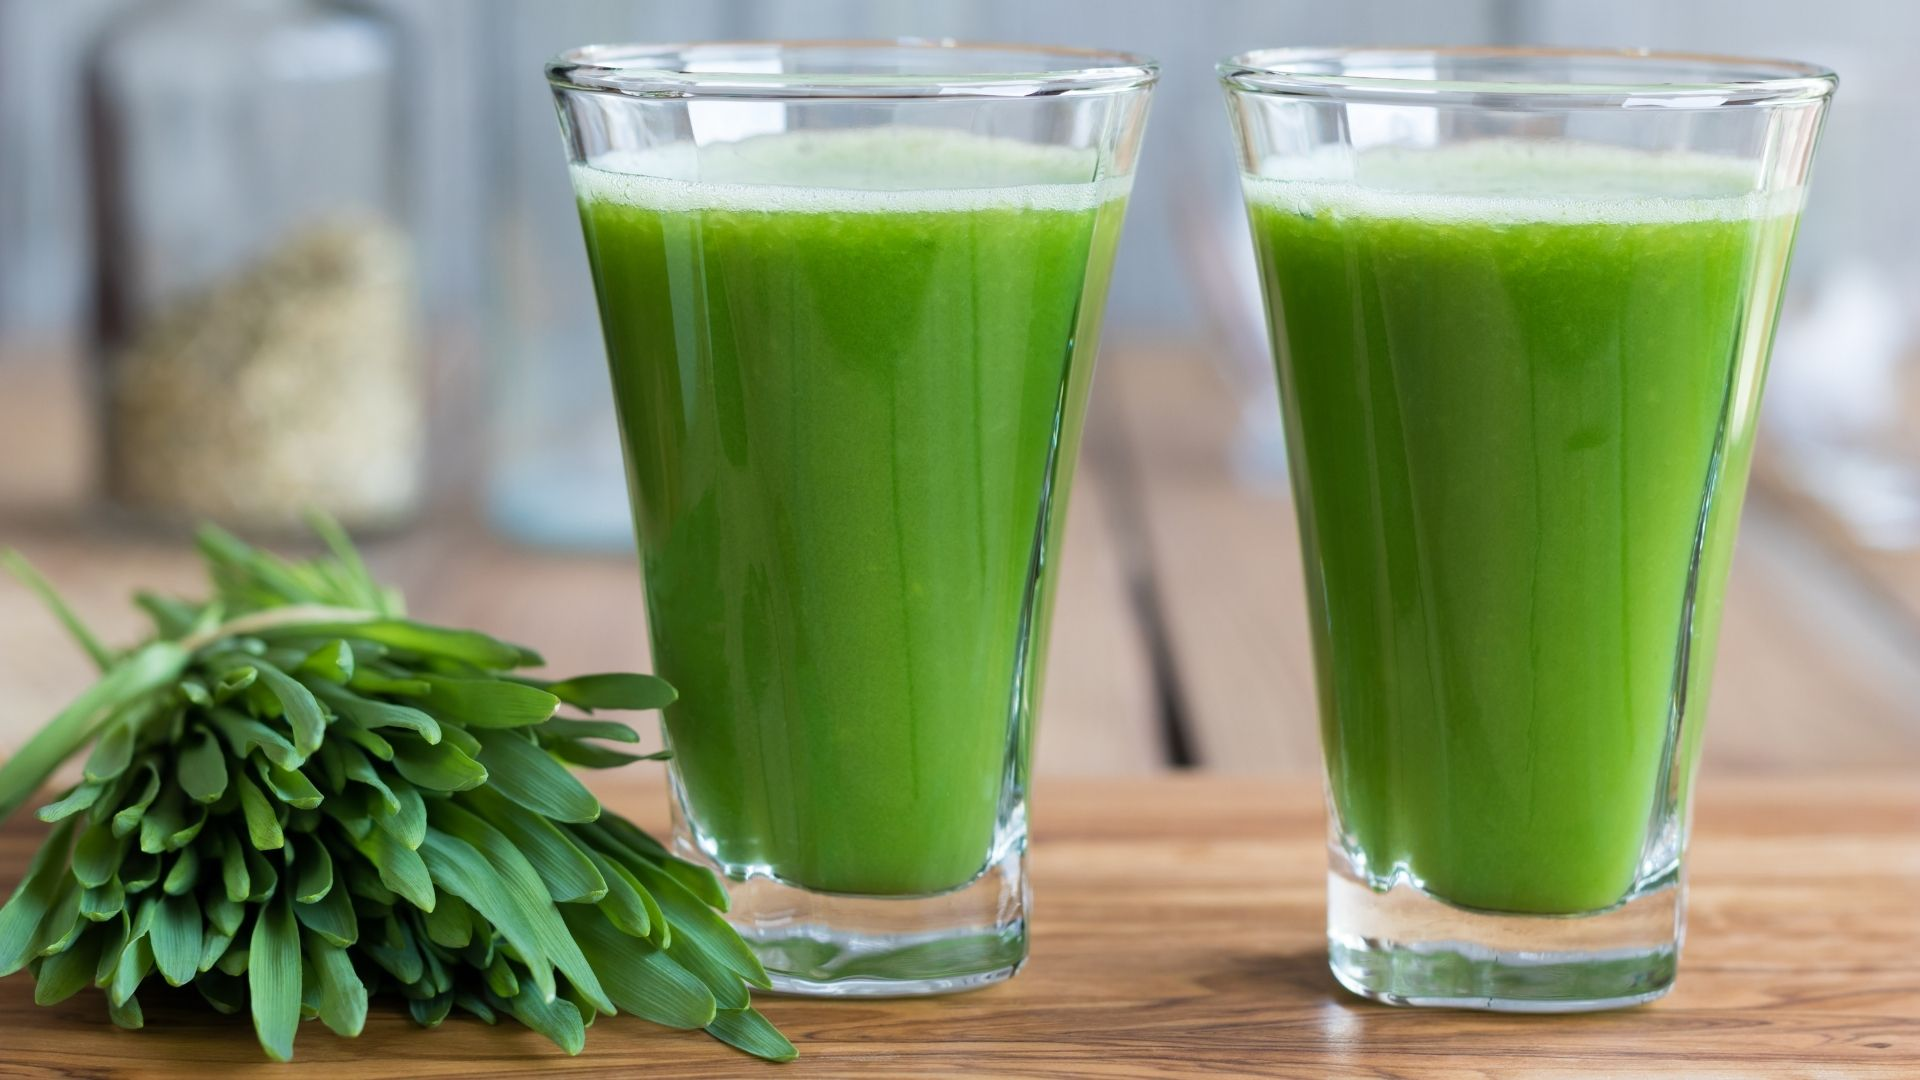 Wheatgrass smoothie and juice